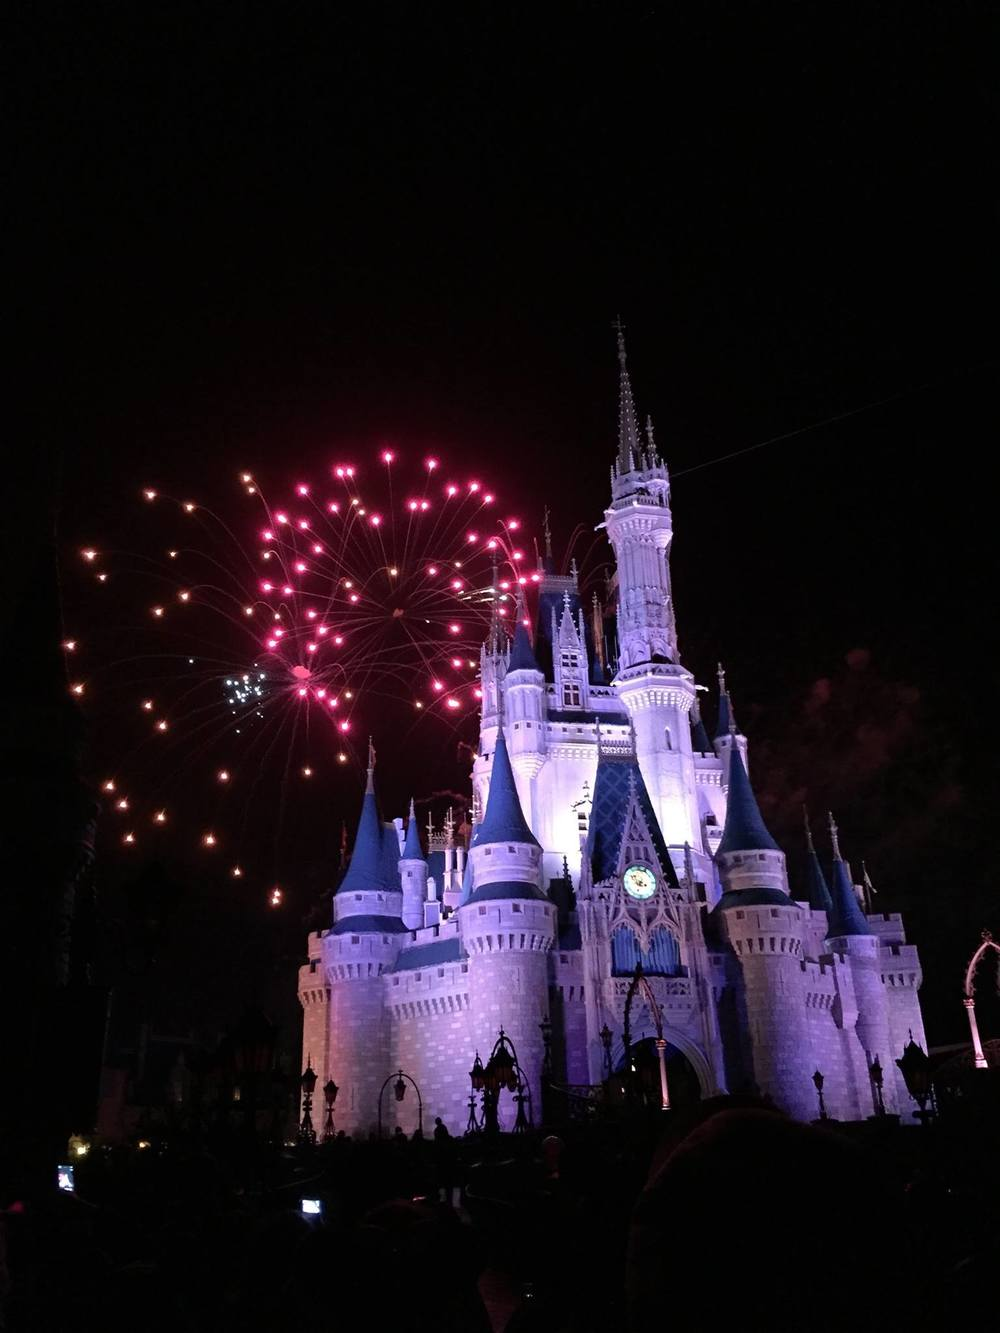 Fireworks at Cinderella's Castle, Magic Kingdom